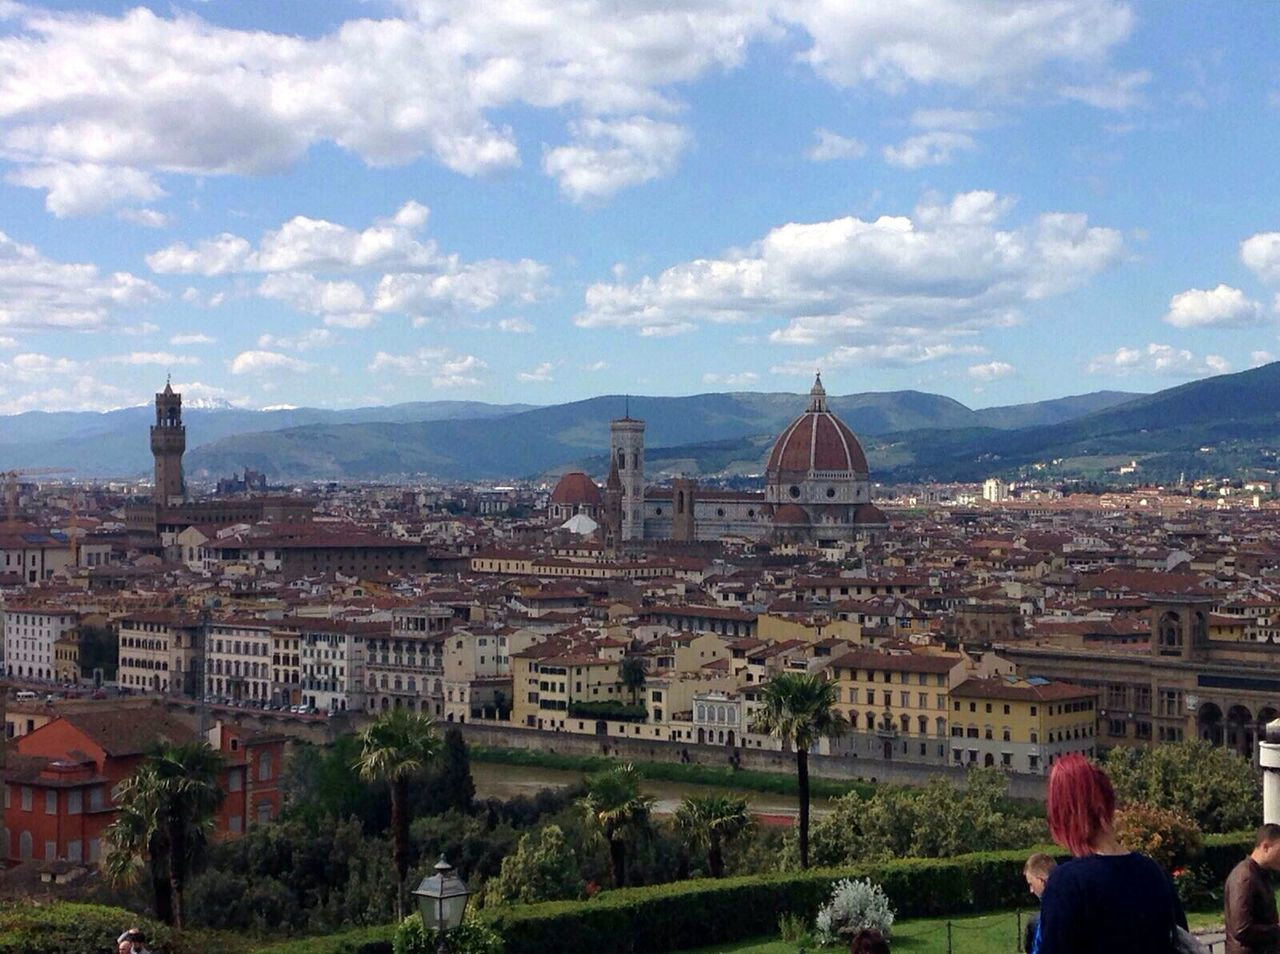 City Cityscape Architecture Travel Destinations Tourism Travel Building Exterior Tourist City Break Cultures Vacations Tower Urban Skyline Place Of Worship Built Structure Aerial View Dome Sky Cloud - Sky People Florence Italy Tourist Attraction  Tour